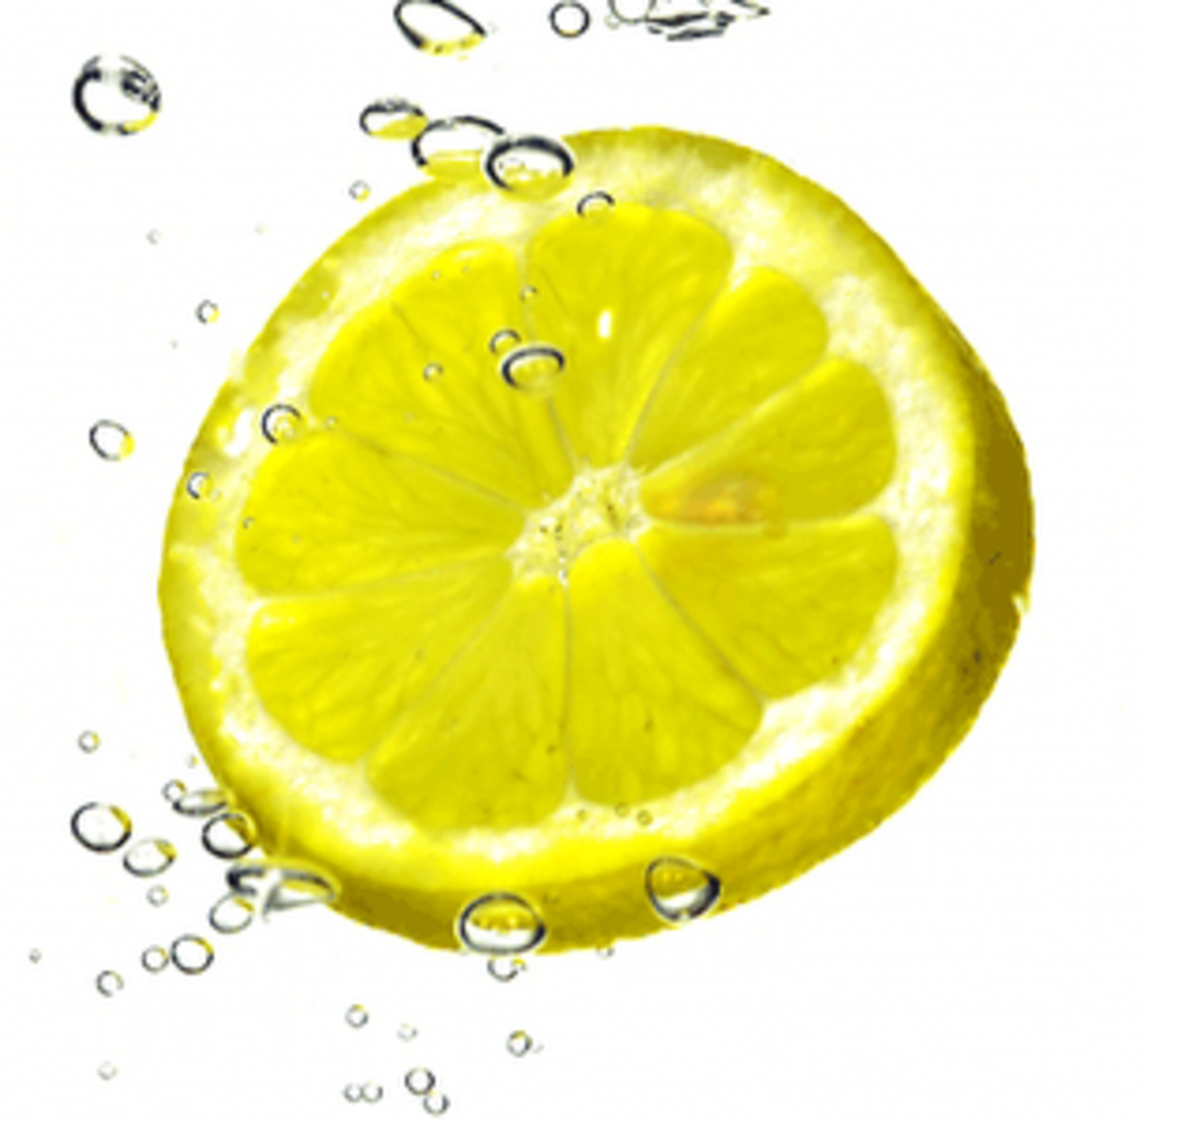 Lemon juice contains citric acid which can help boost your skin's collagen production.